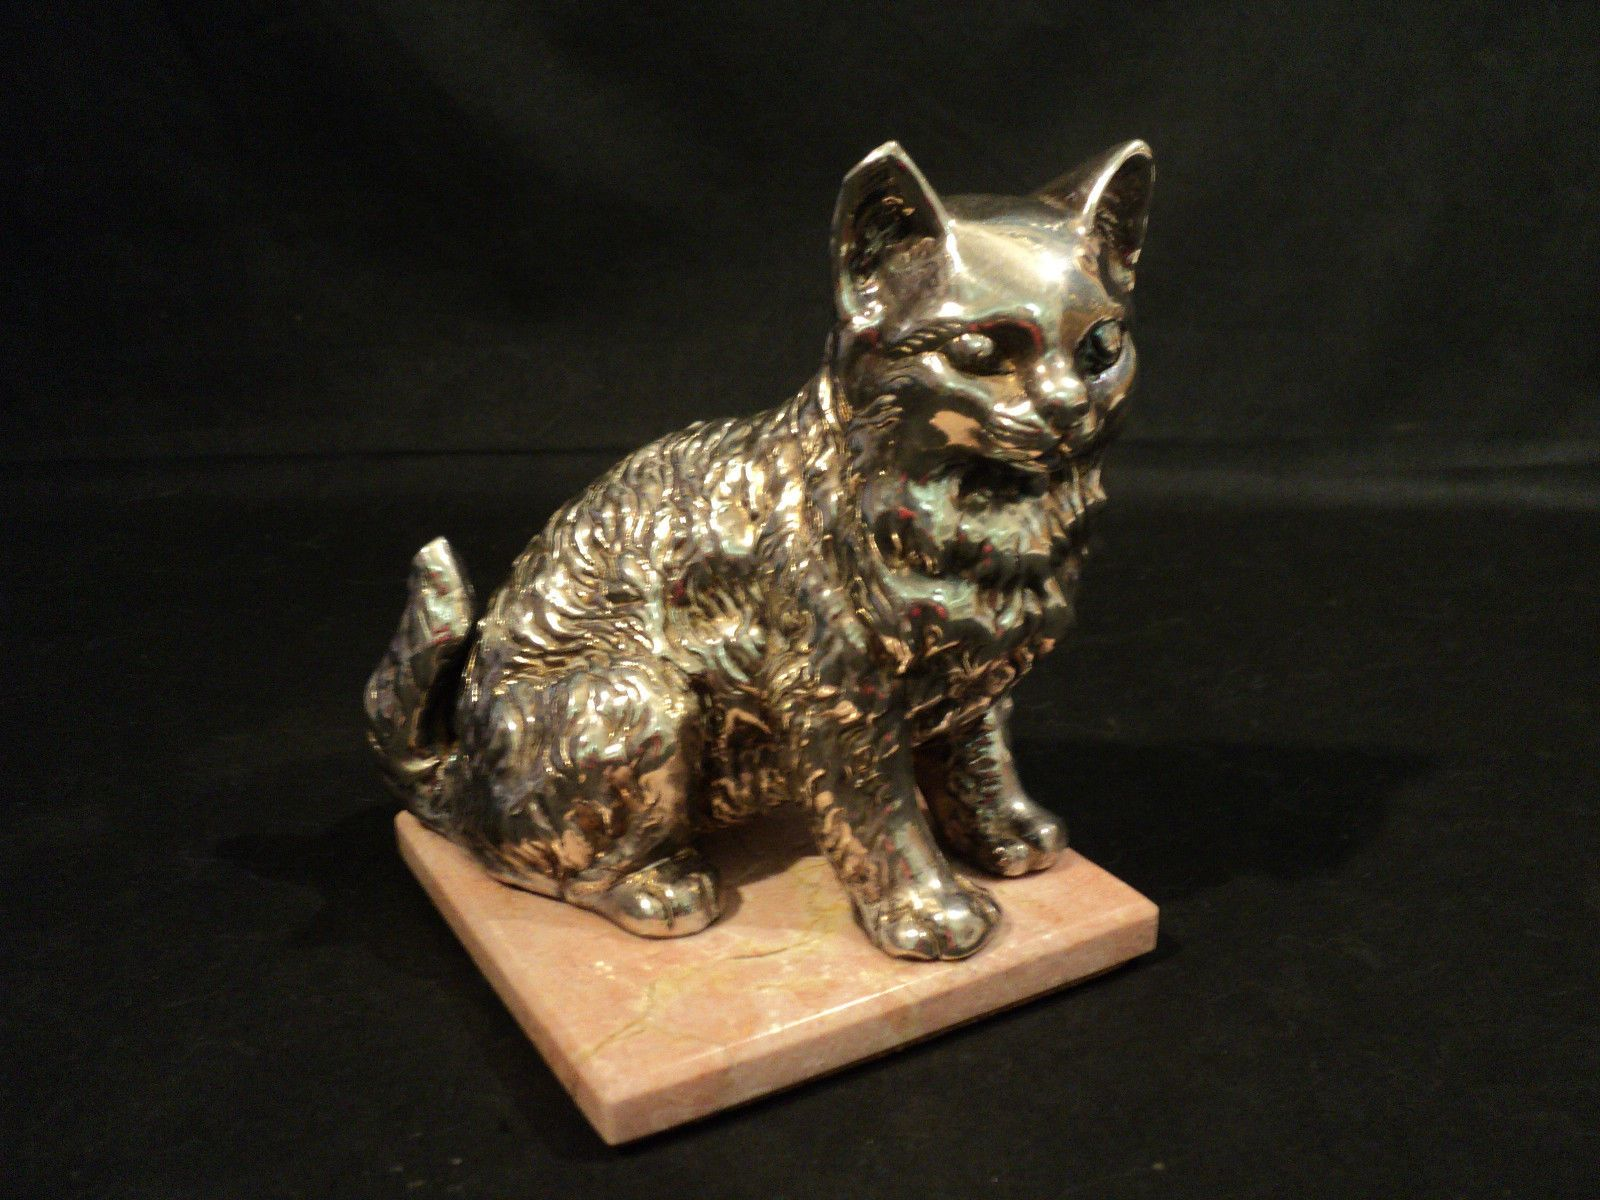 """vintage Sterling Silver """"Cat/Kitten"""" figurine mounted on a pink marbelized tile. The base is stamped with unidentified hallmarks on back left paw. The figure appears to be weighted rather than solid silver  Measures 5"""" high with the tile being 3 3/4"""" square"""